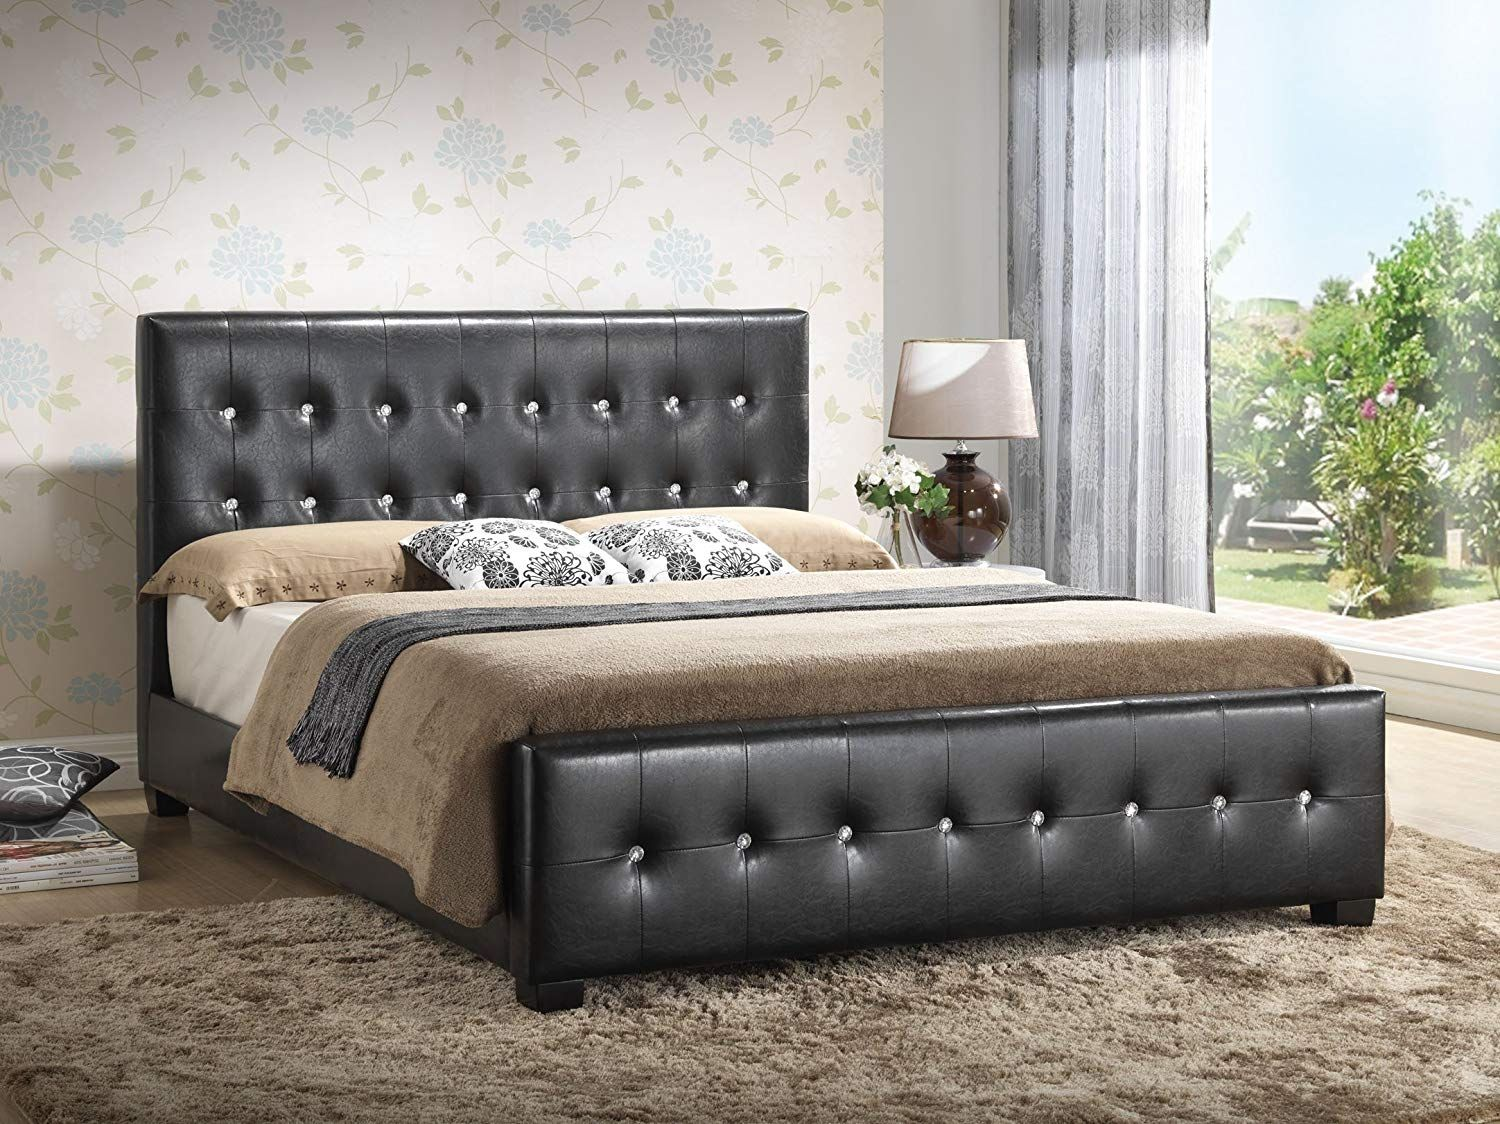 Best Amazing Leather Bed Designs 2019 400 x 300